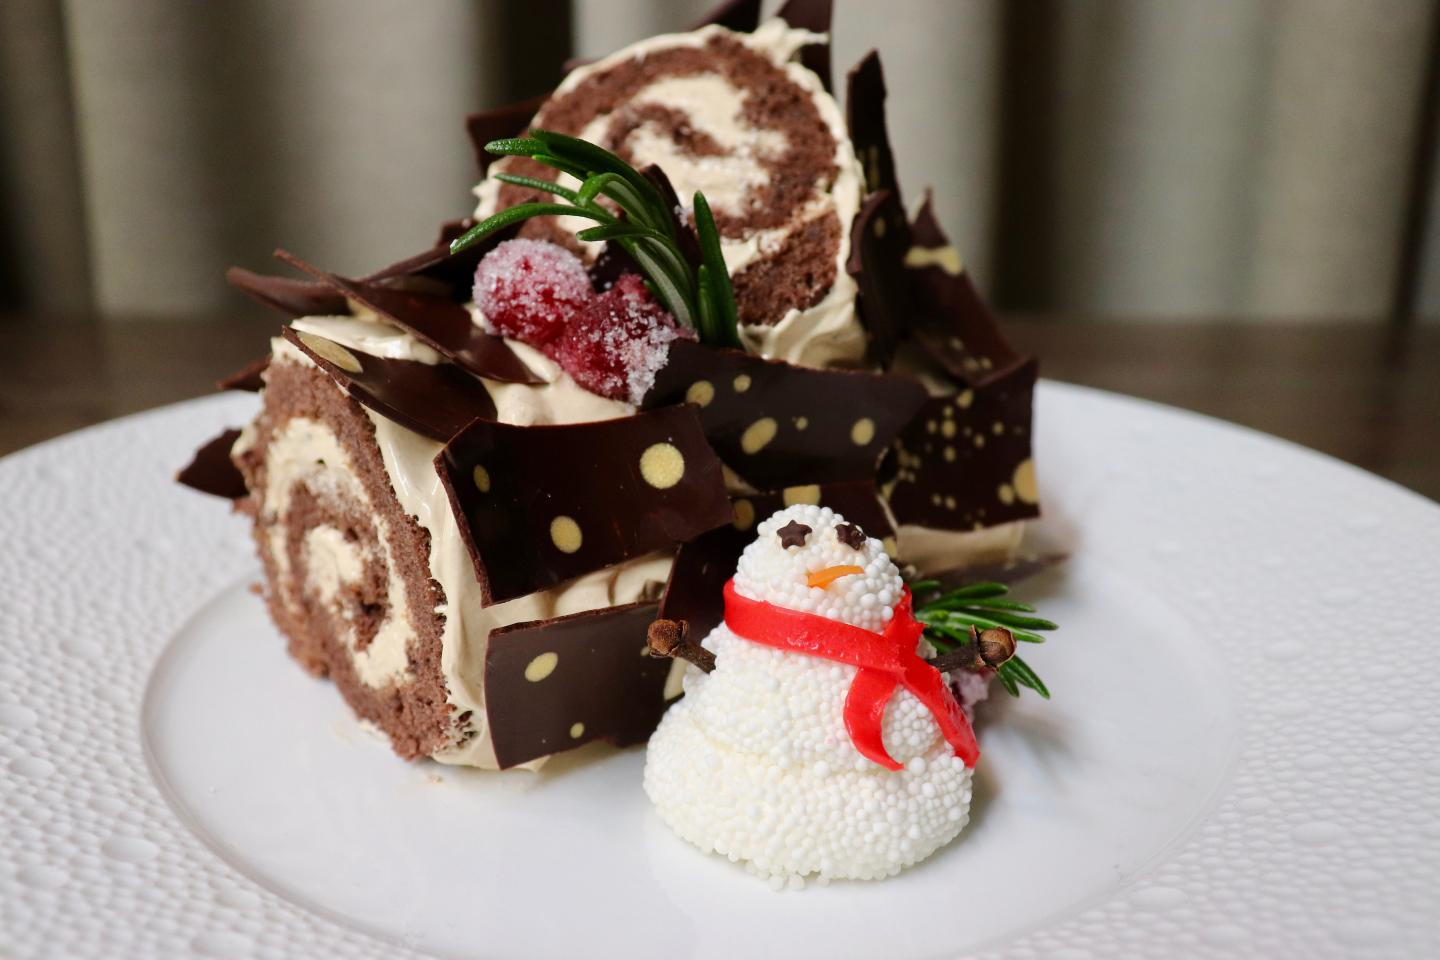 Booth One Buche de Noel Holiday Dessert